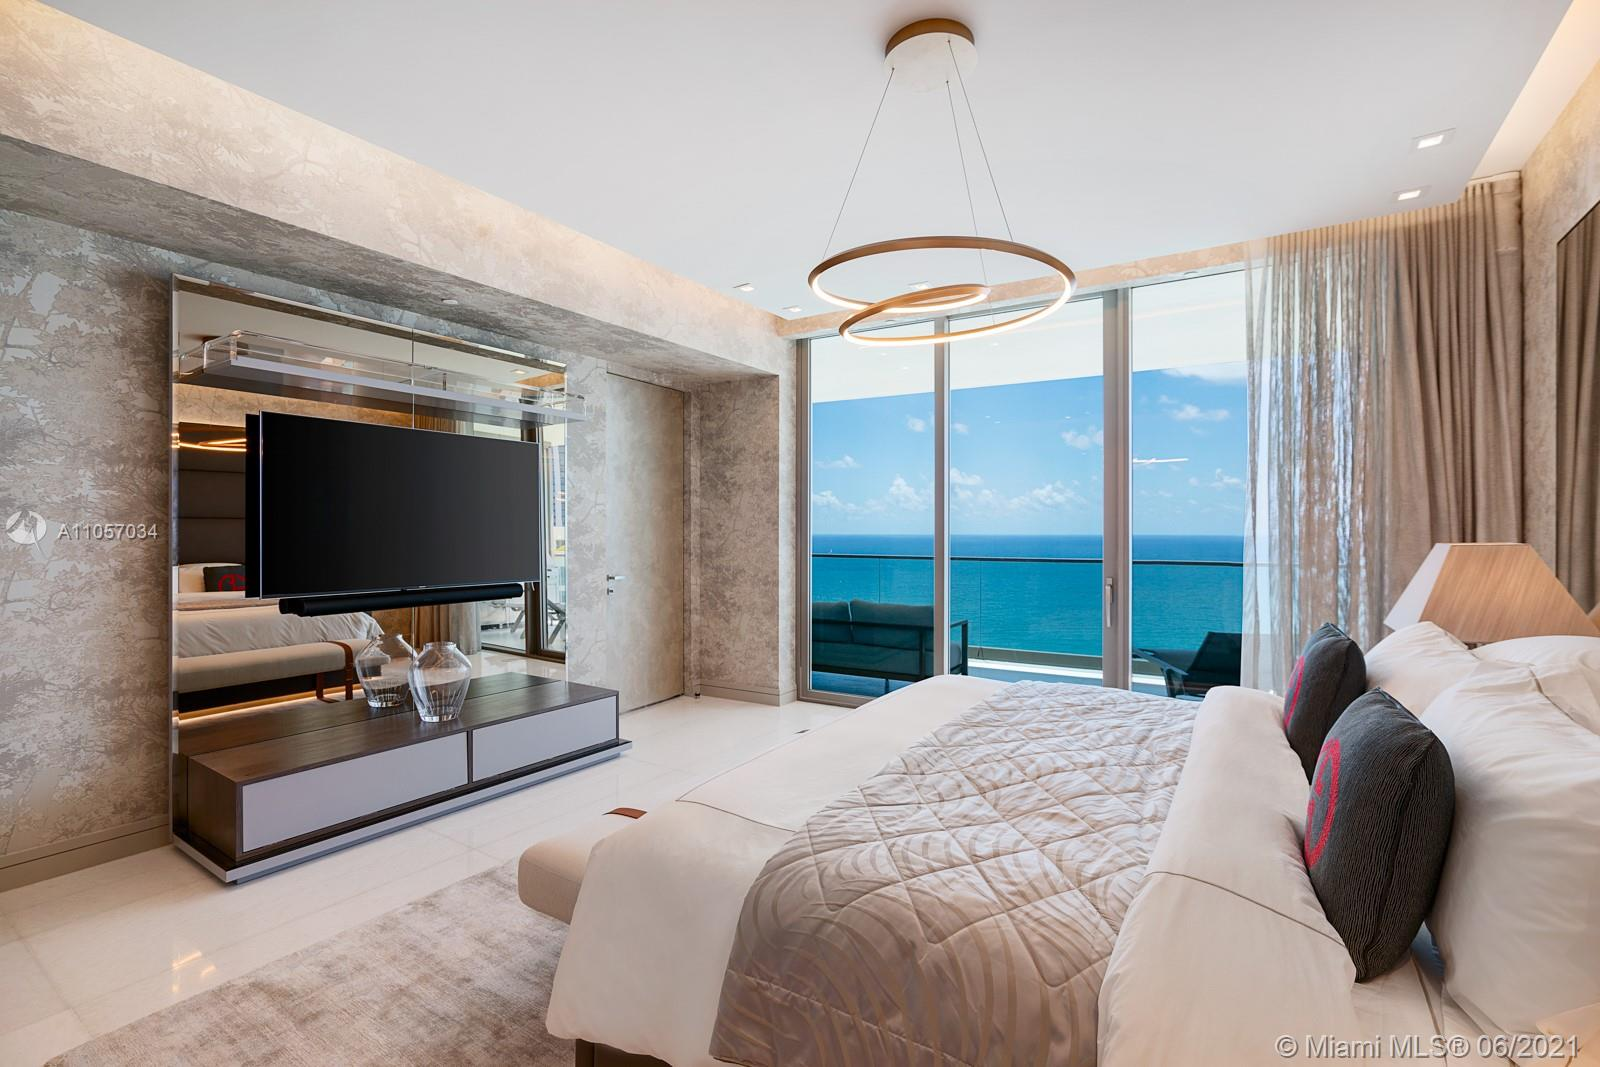 18975 Collins Ave, Unit #3101 Luxury Real Estate